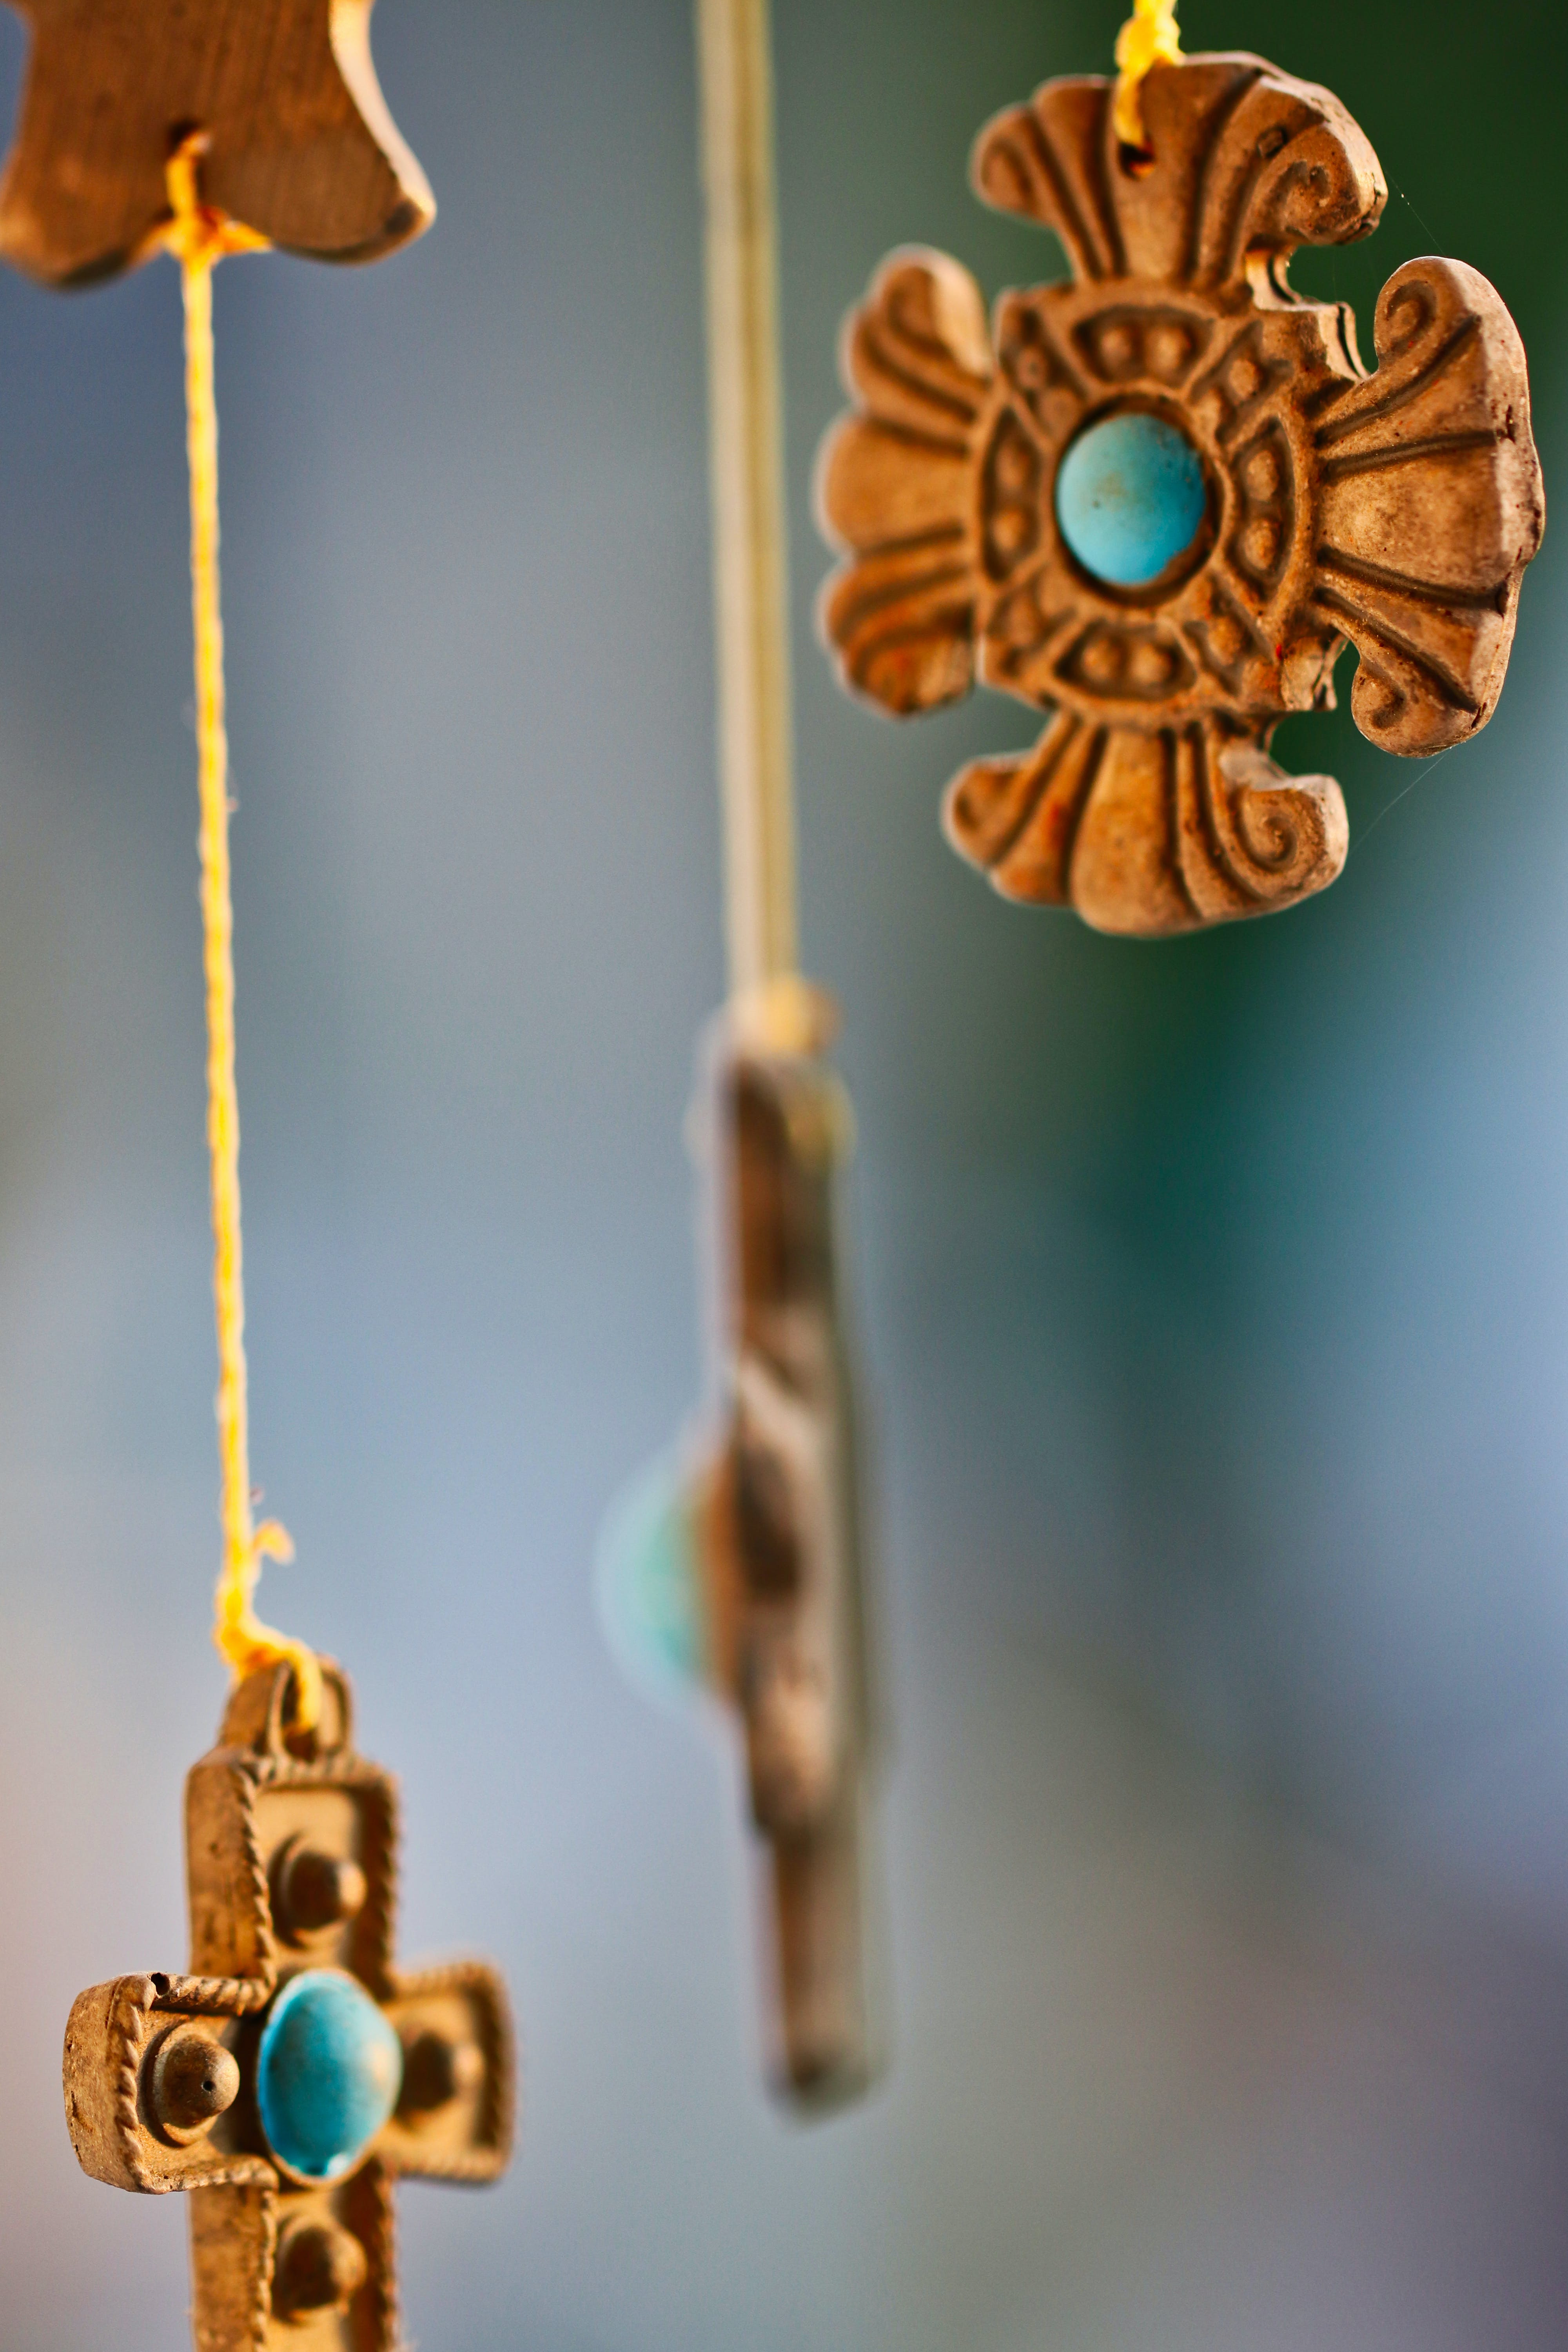 Selective Focus Photo Of Ornaments